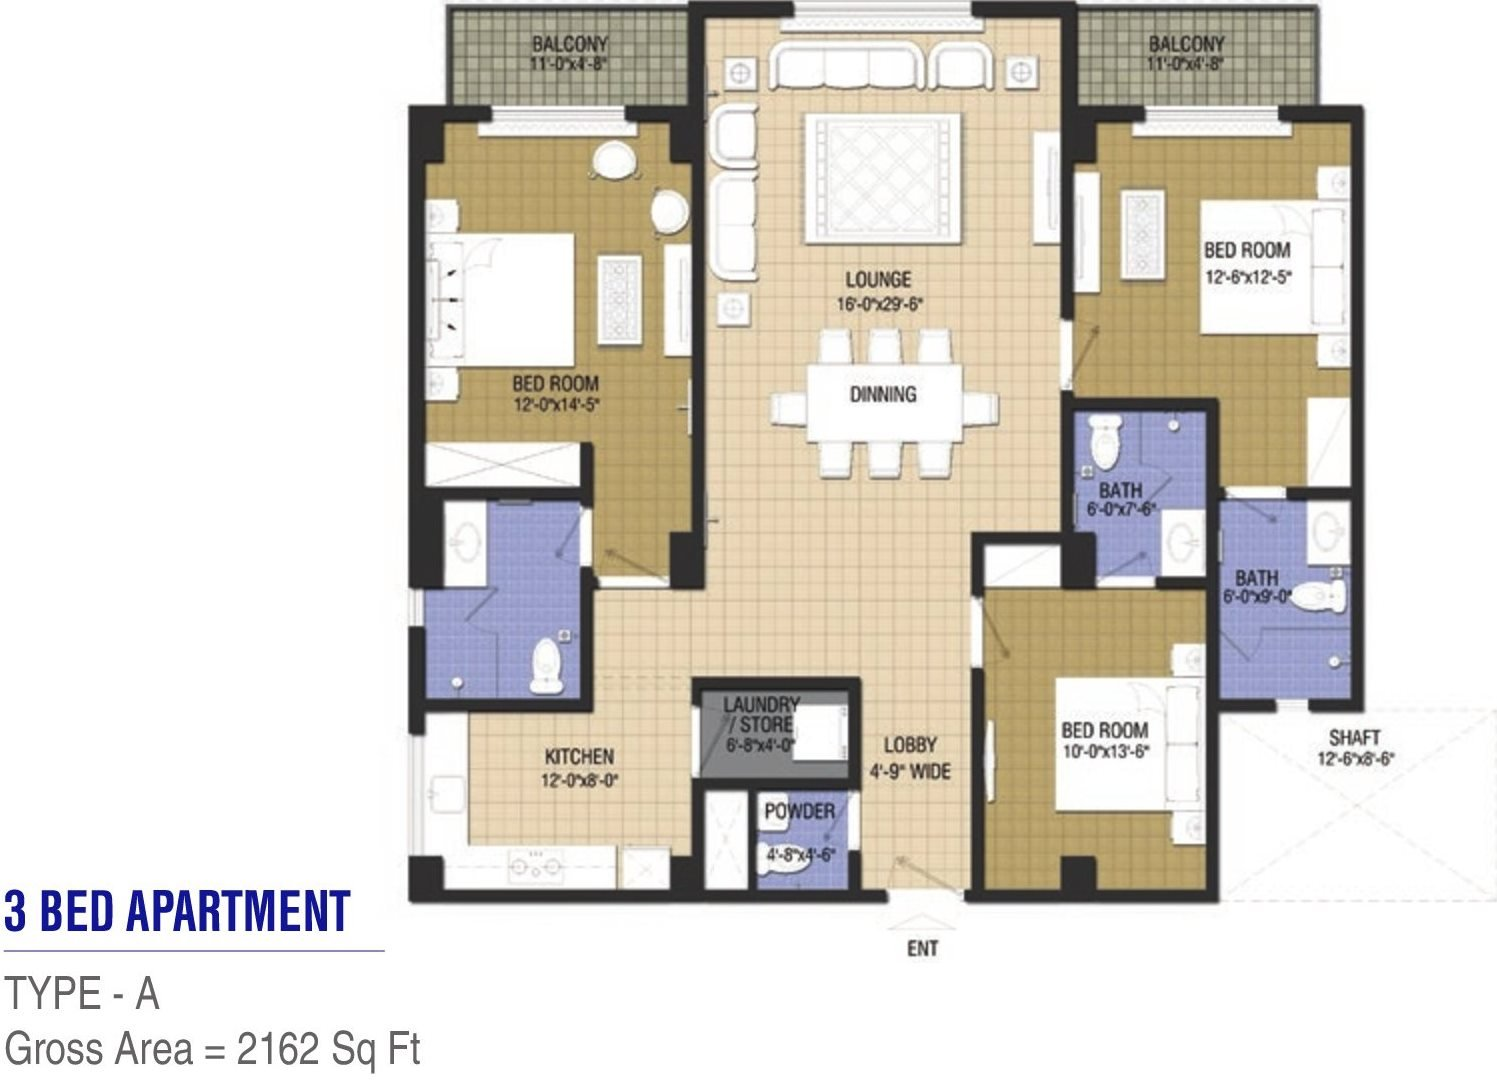 Goldcrest Chic 2 - 3 bed - Type A